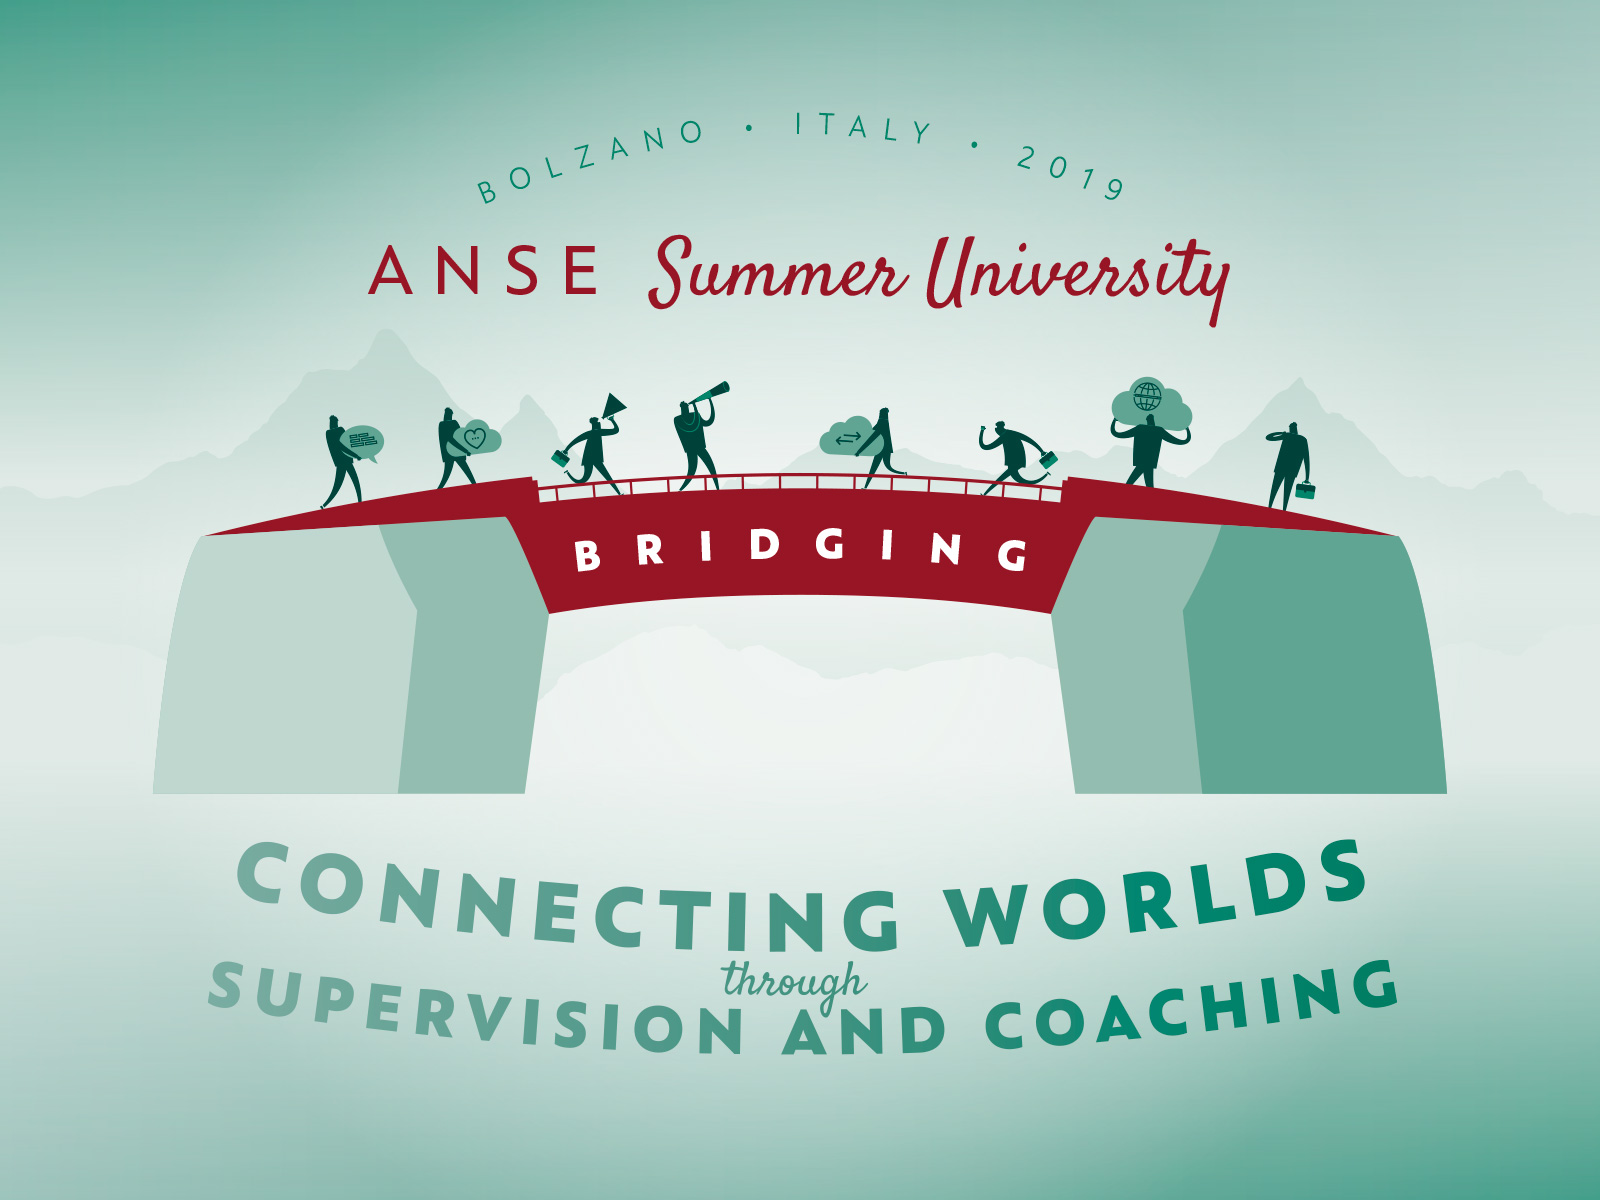 ANSE Summer University 2019 in Bolzano, Italy. Organized by BSC ASC Supervision and Coaching. Illustration Design by adpassion, Waldemar Kerschbaumer.